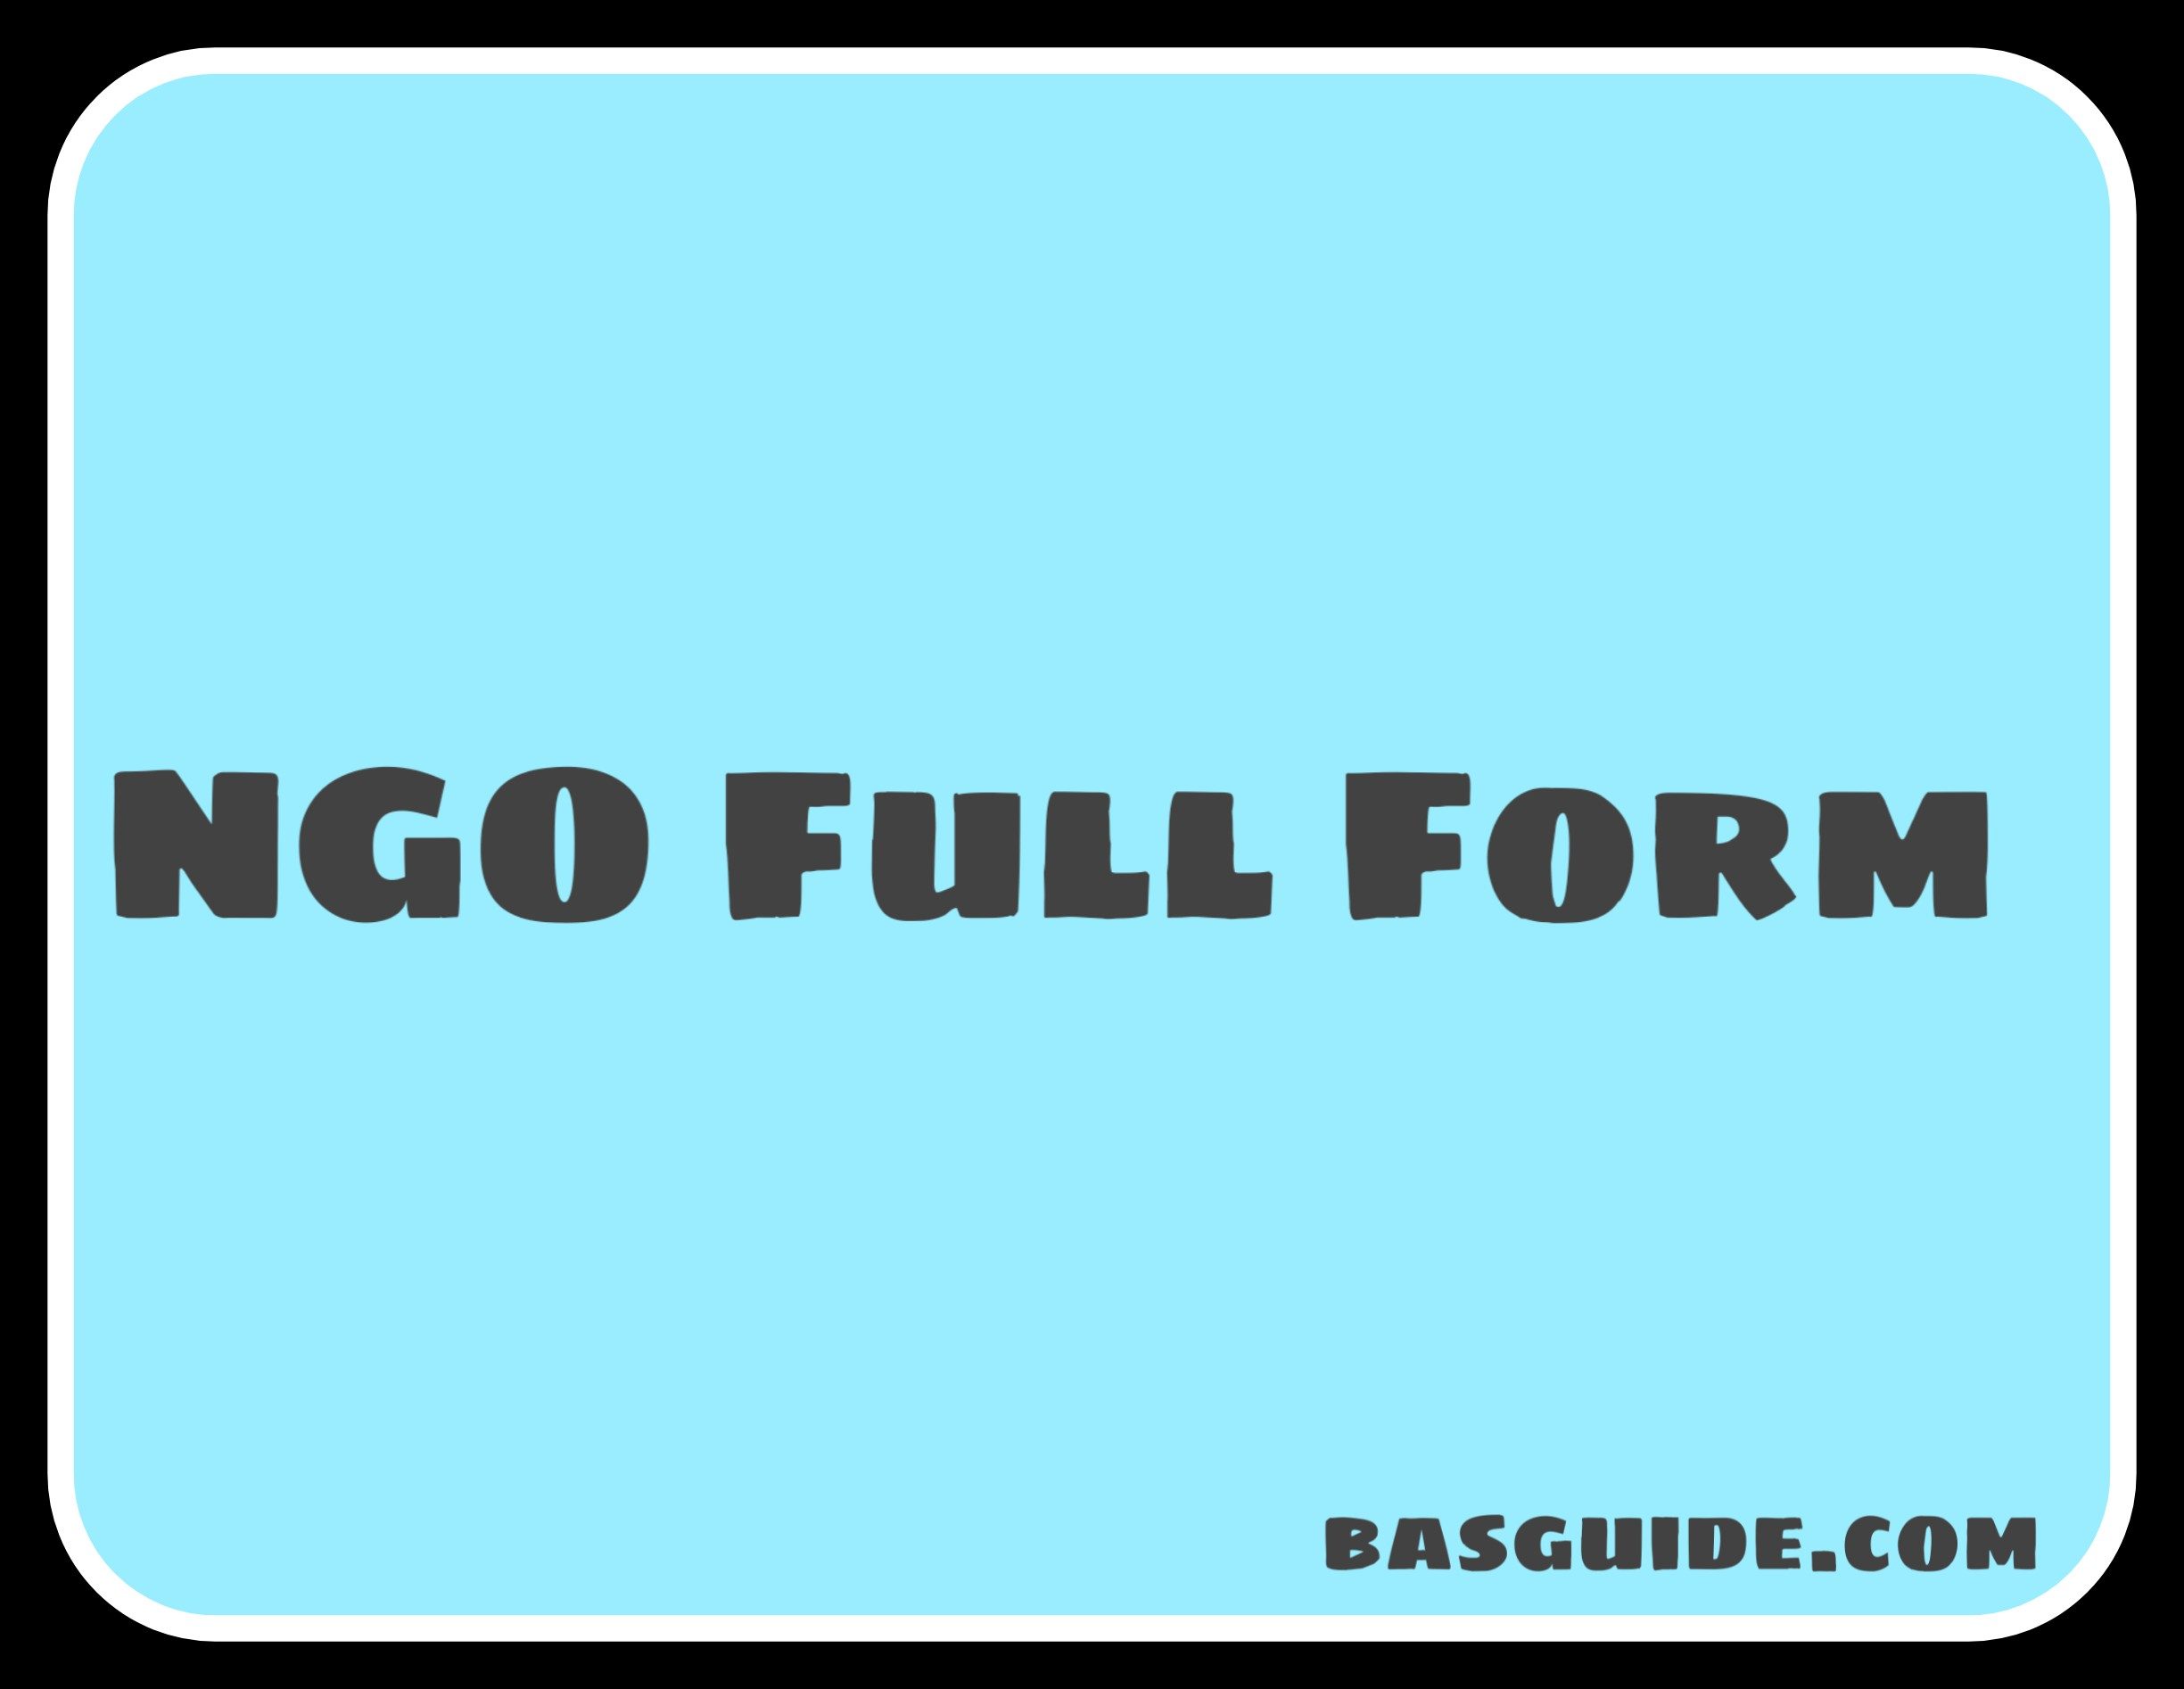 NGO Full Form